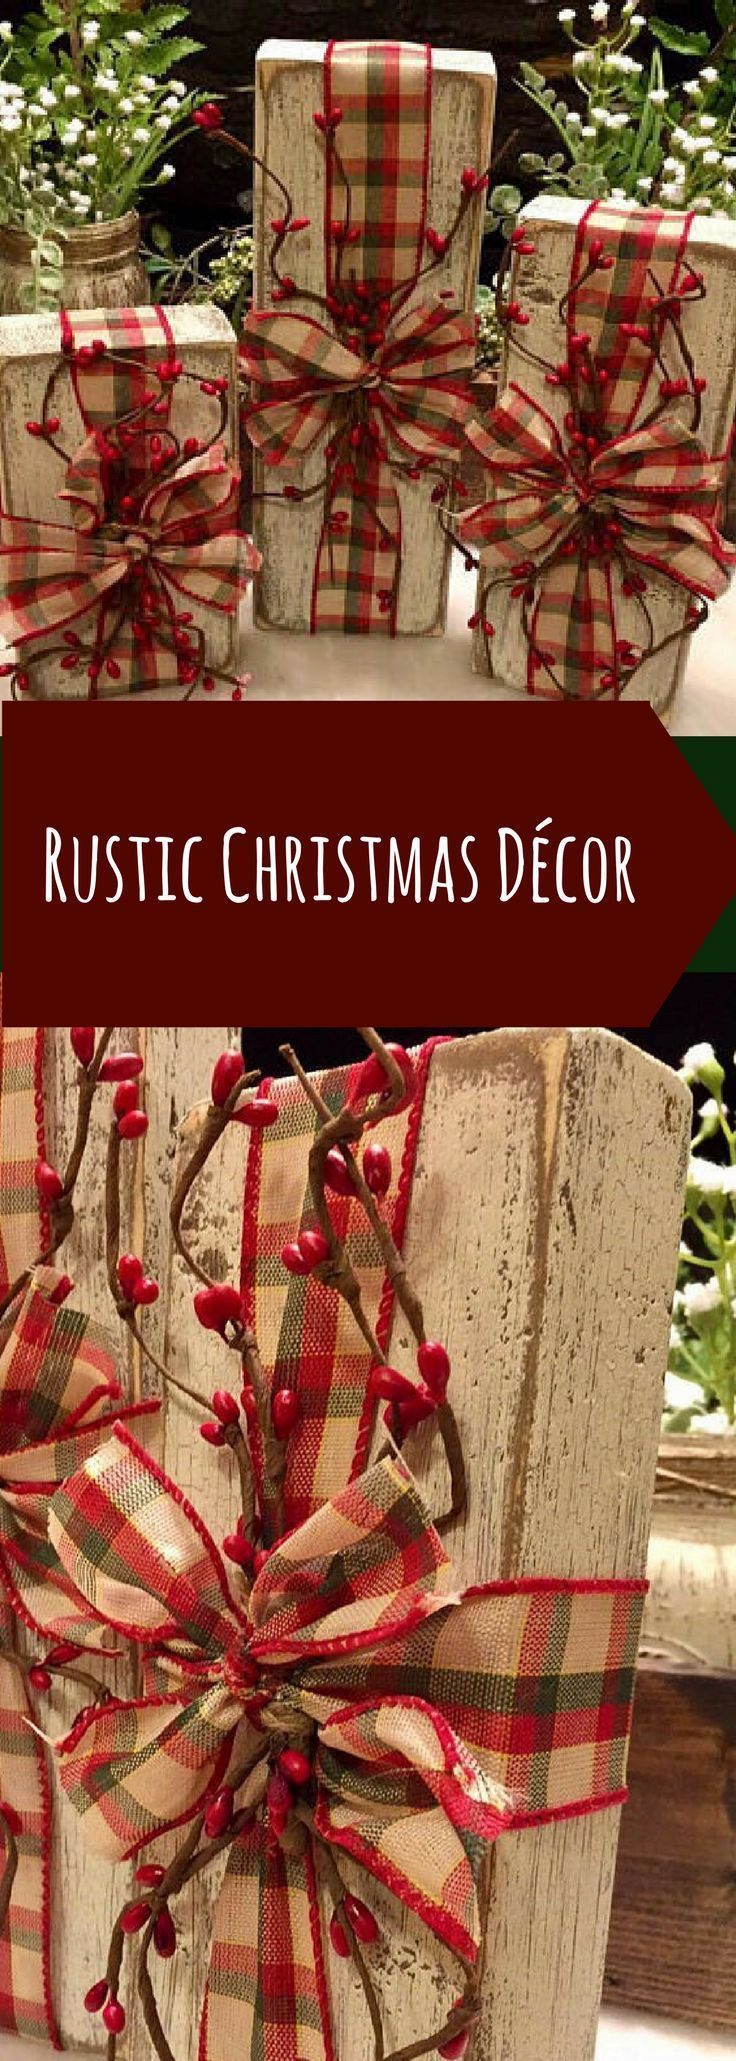 rustic christmas craft ideas 2450 best wood crafts images on woodworking 5349